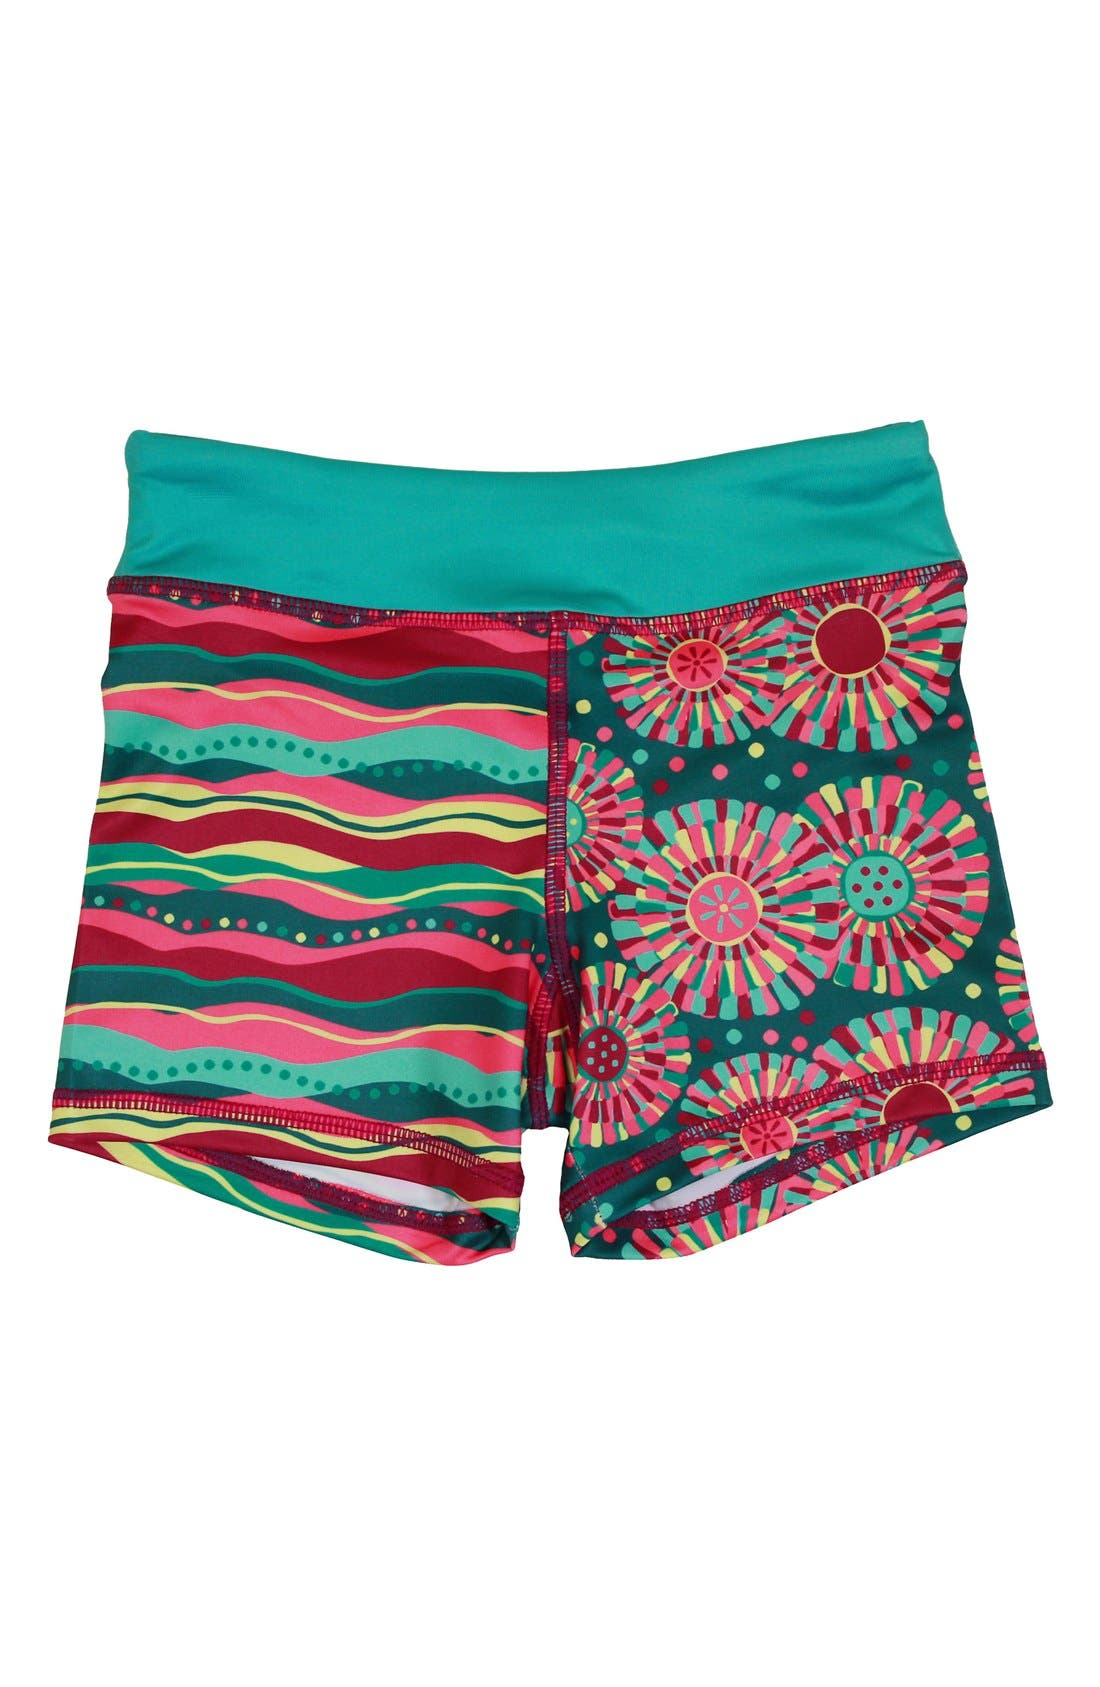 CHOOZE 'Splits' Mixed Print Shorts